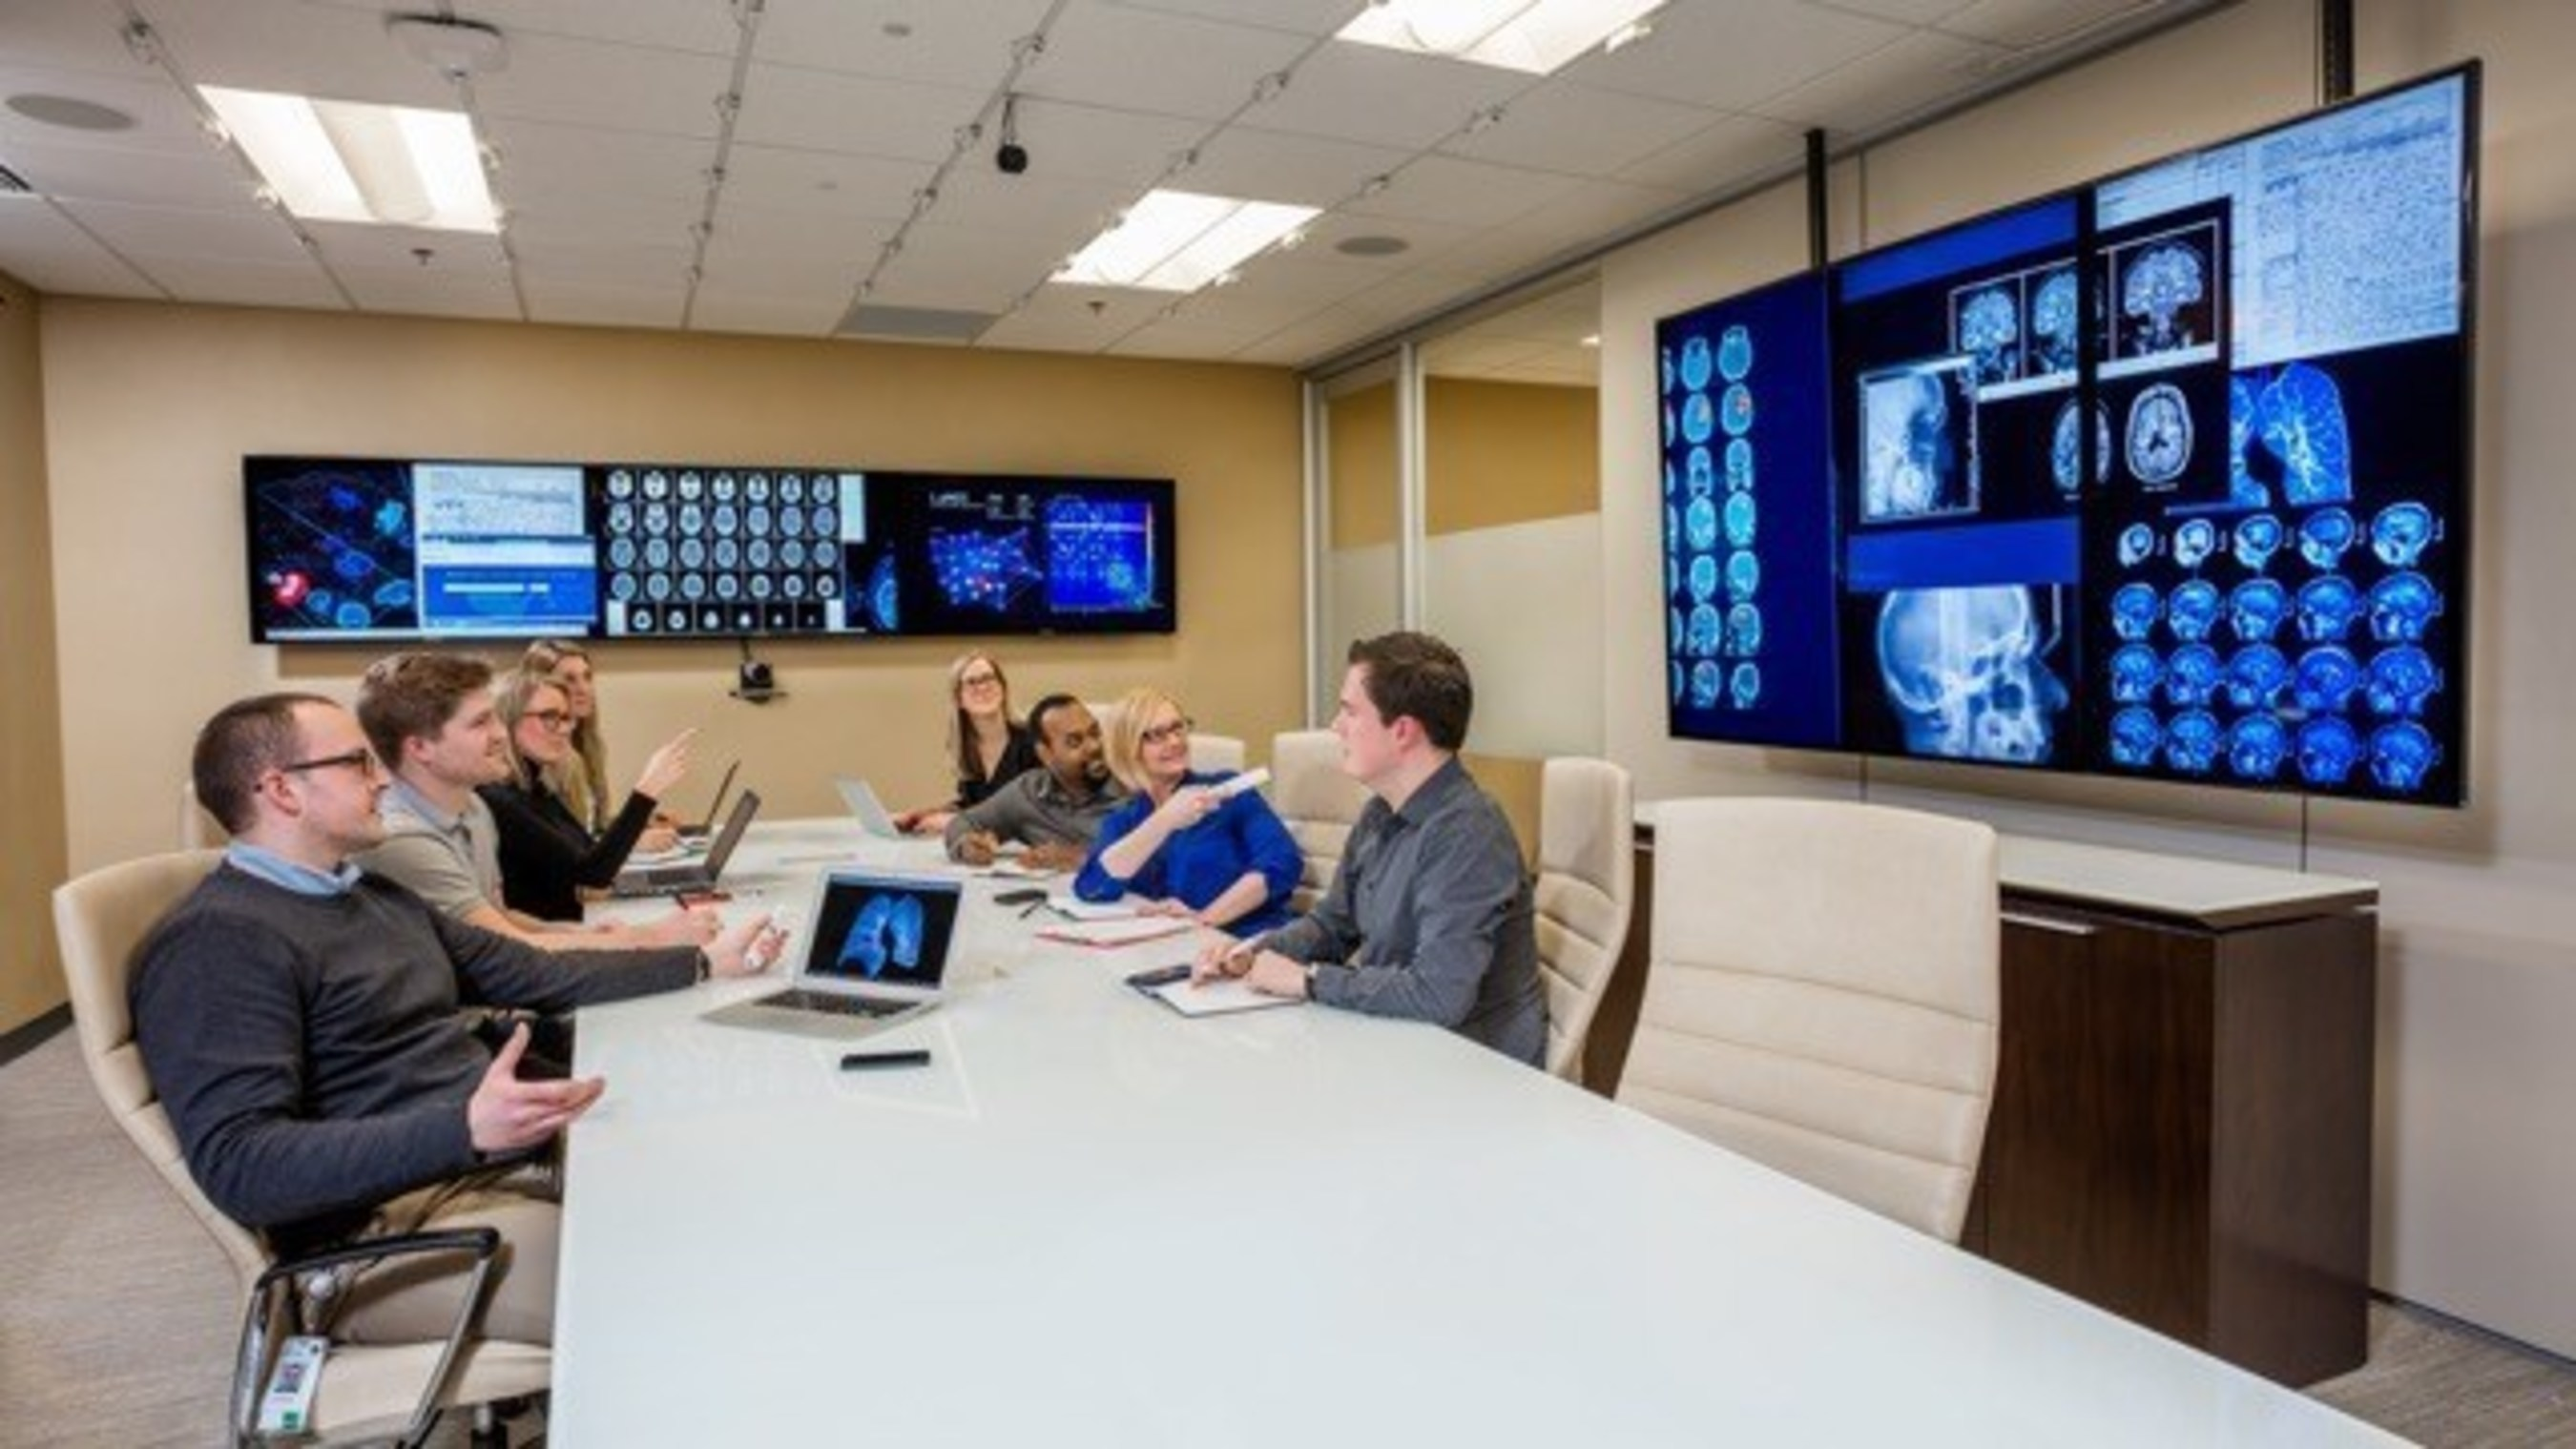 Sarah Cannon invests in innovative technology from Oblong Industries to promote collaboration between colleagues and partners across U.S. and UK